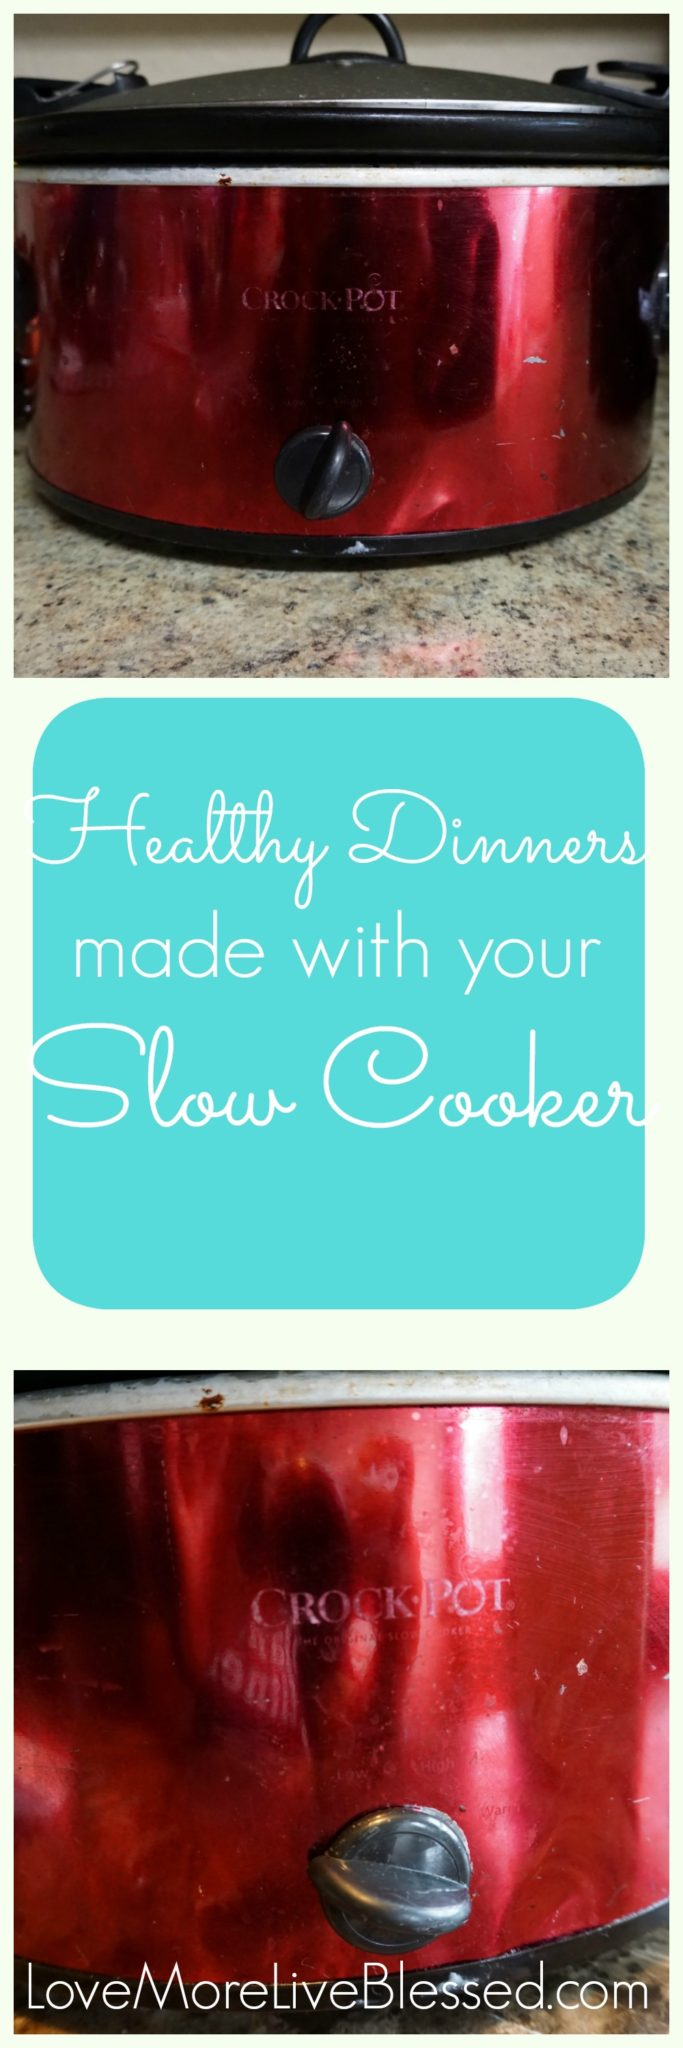 How your slow cooker can help you make healthy dinners + 3 awesome dinner ideas.